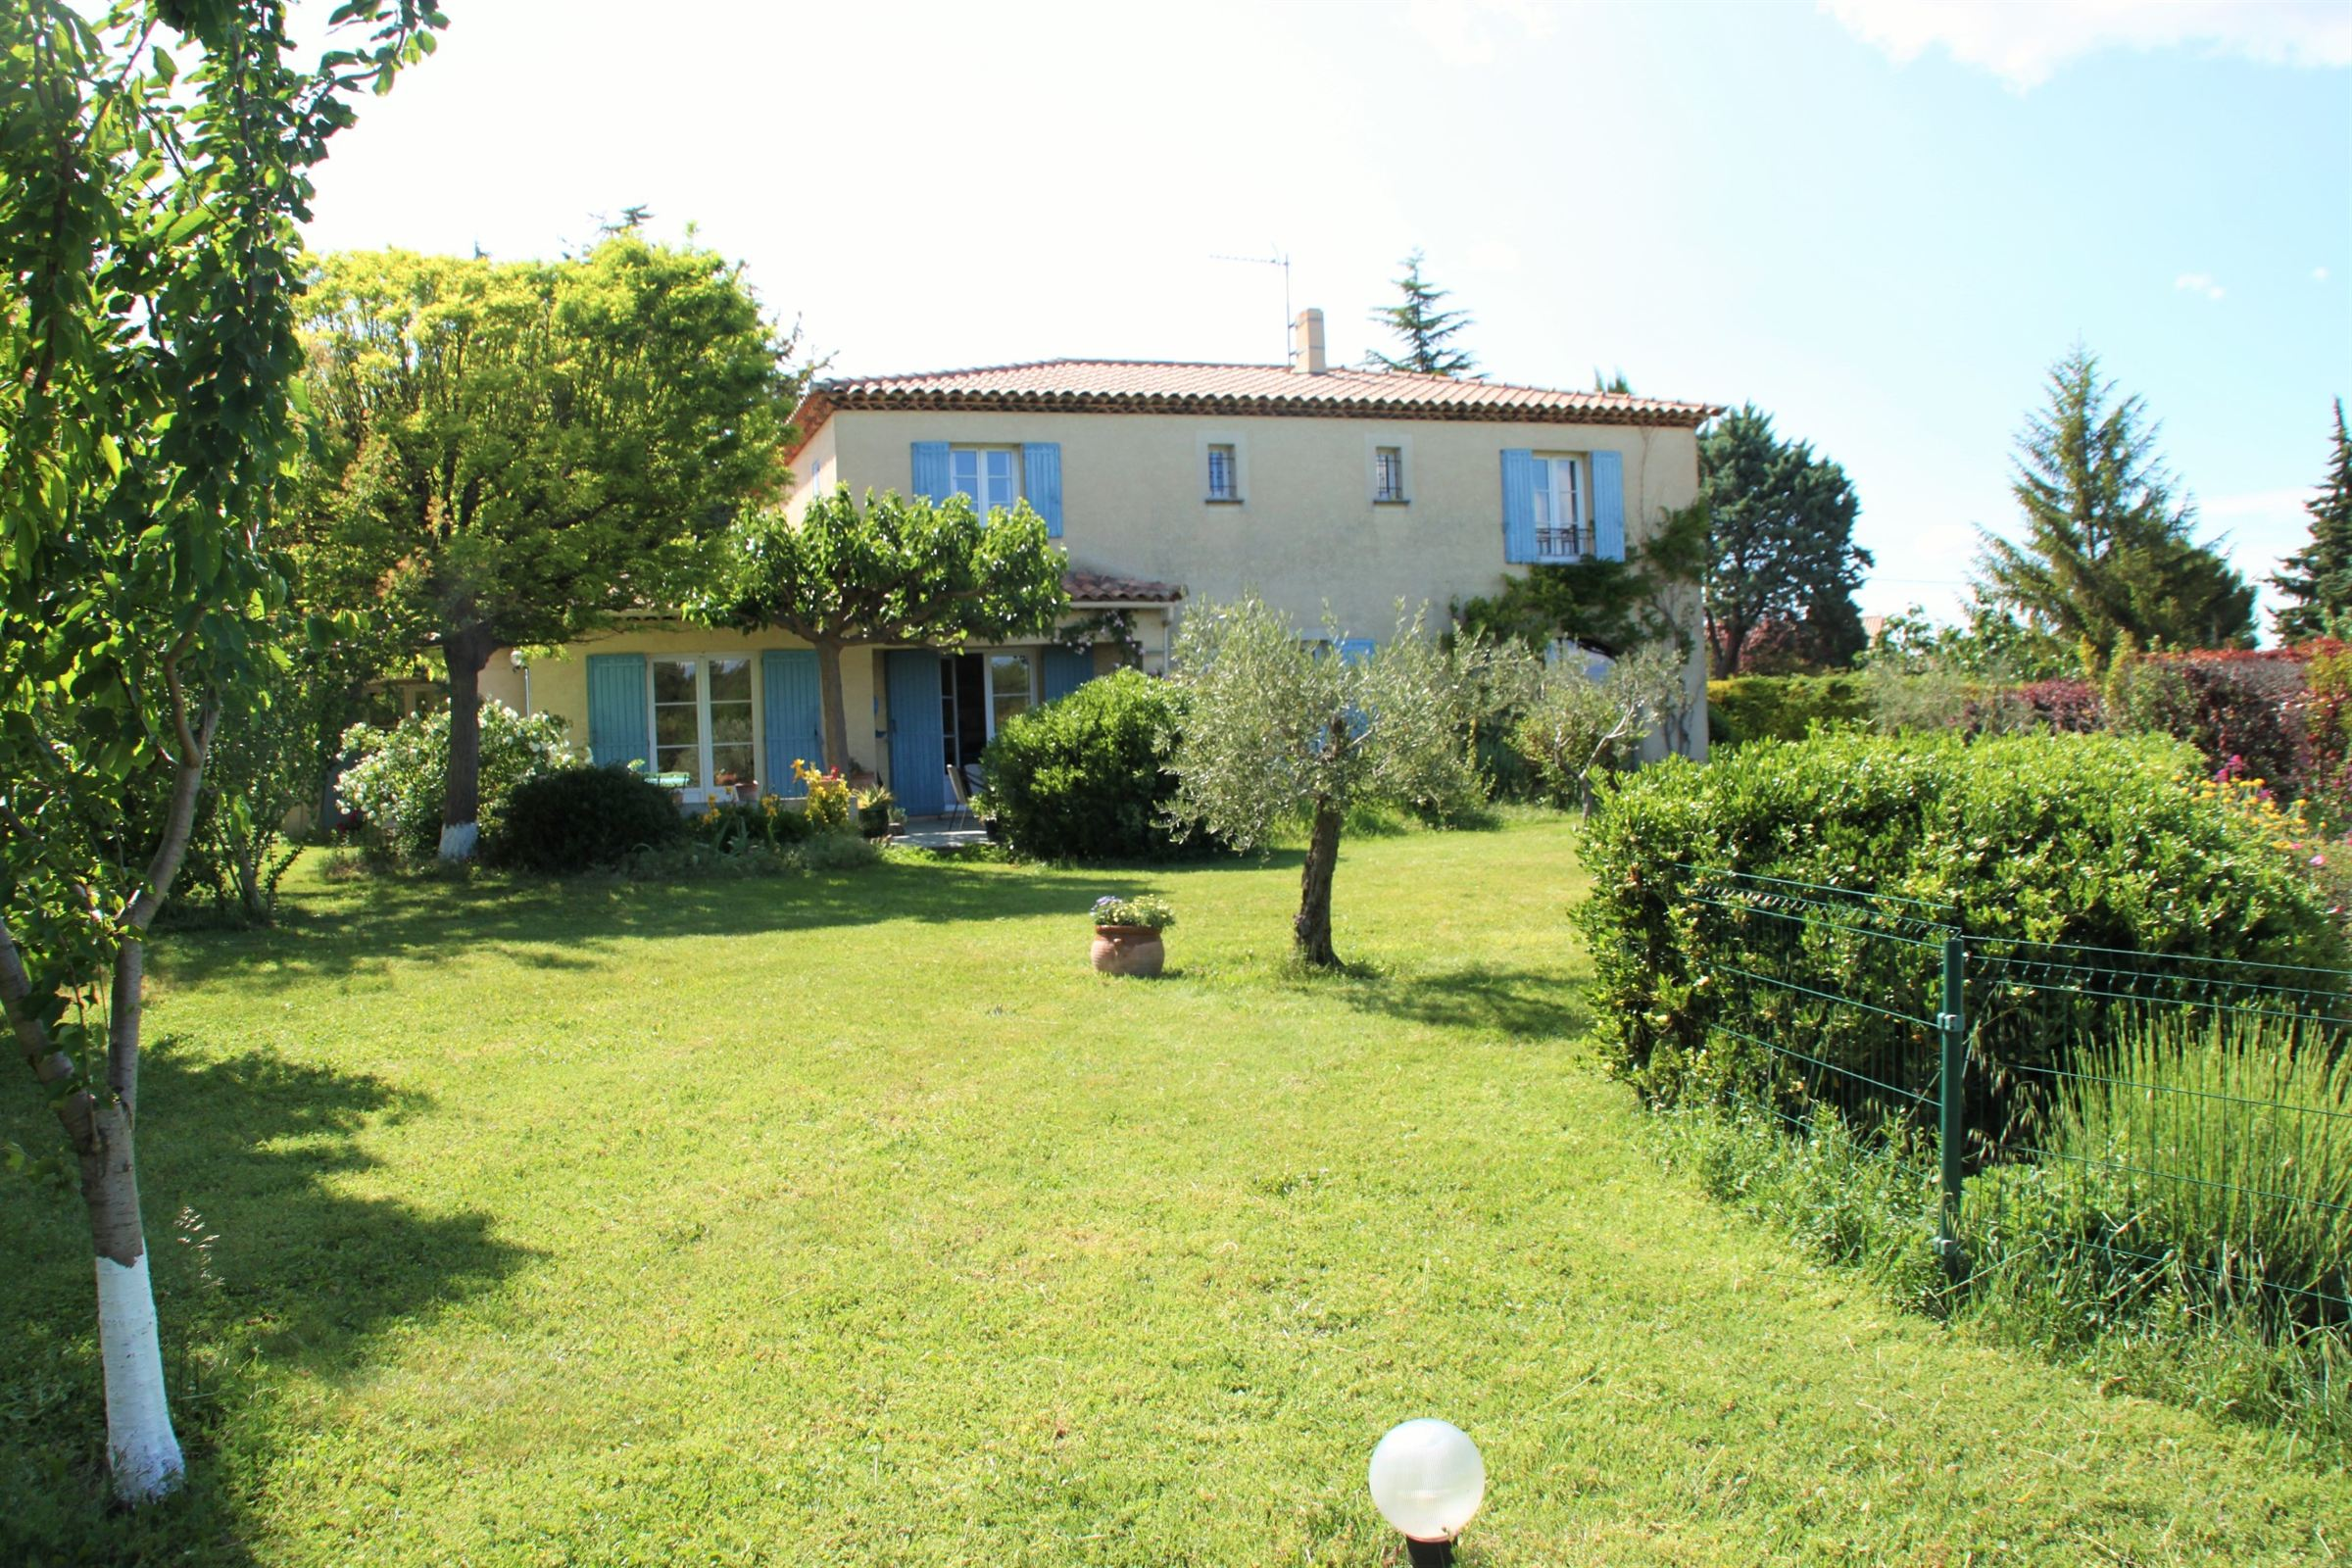 Single Family Home for Sale at 5 MINUTS FROM CENTER Other Provence-Alpes-Cote D'Azur, Provence-Alpes-Cote D'Azur, 13090 France